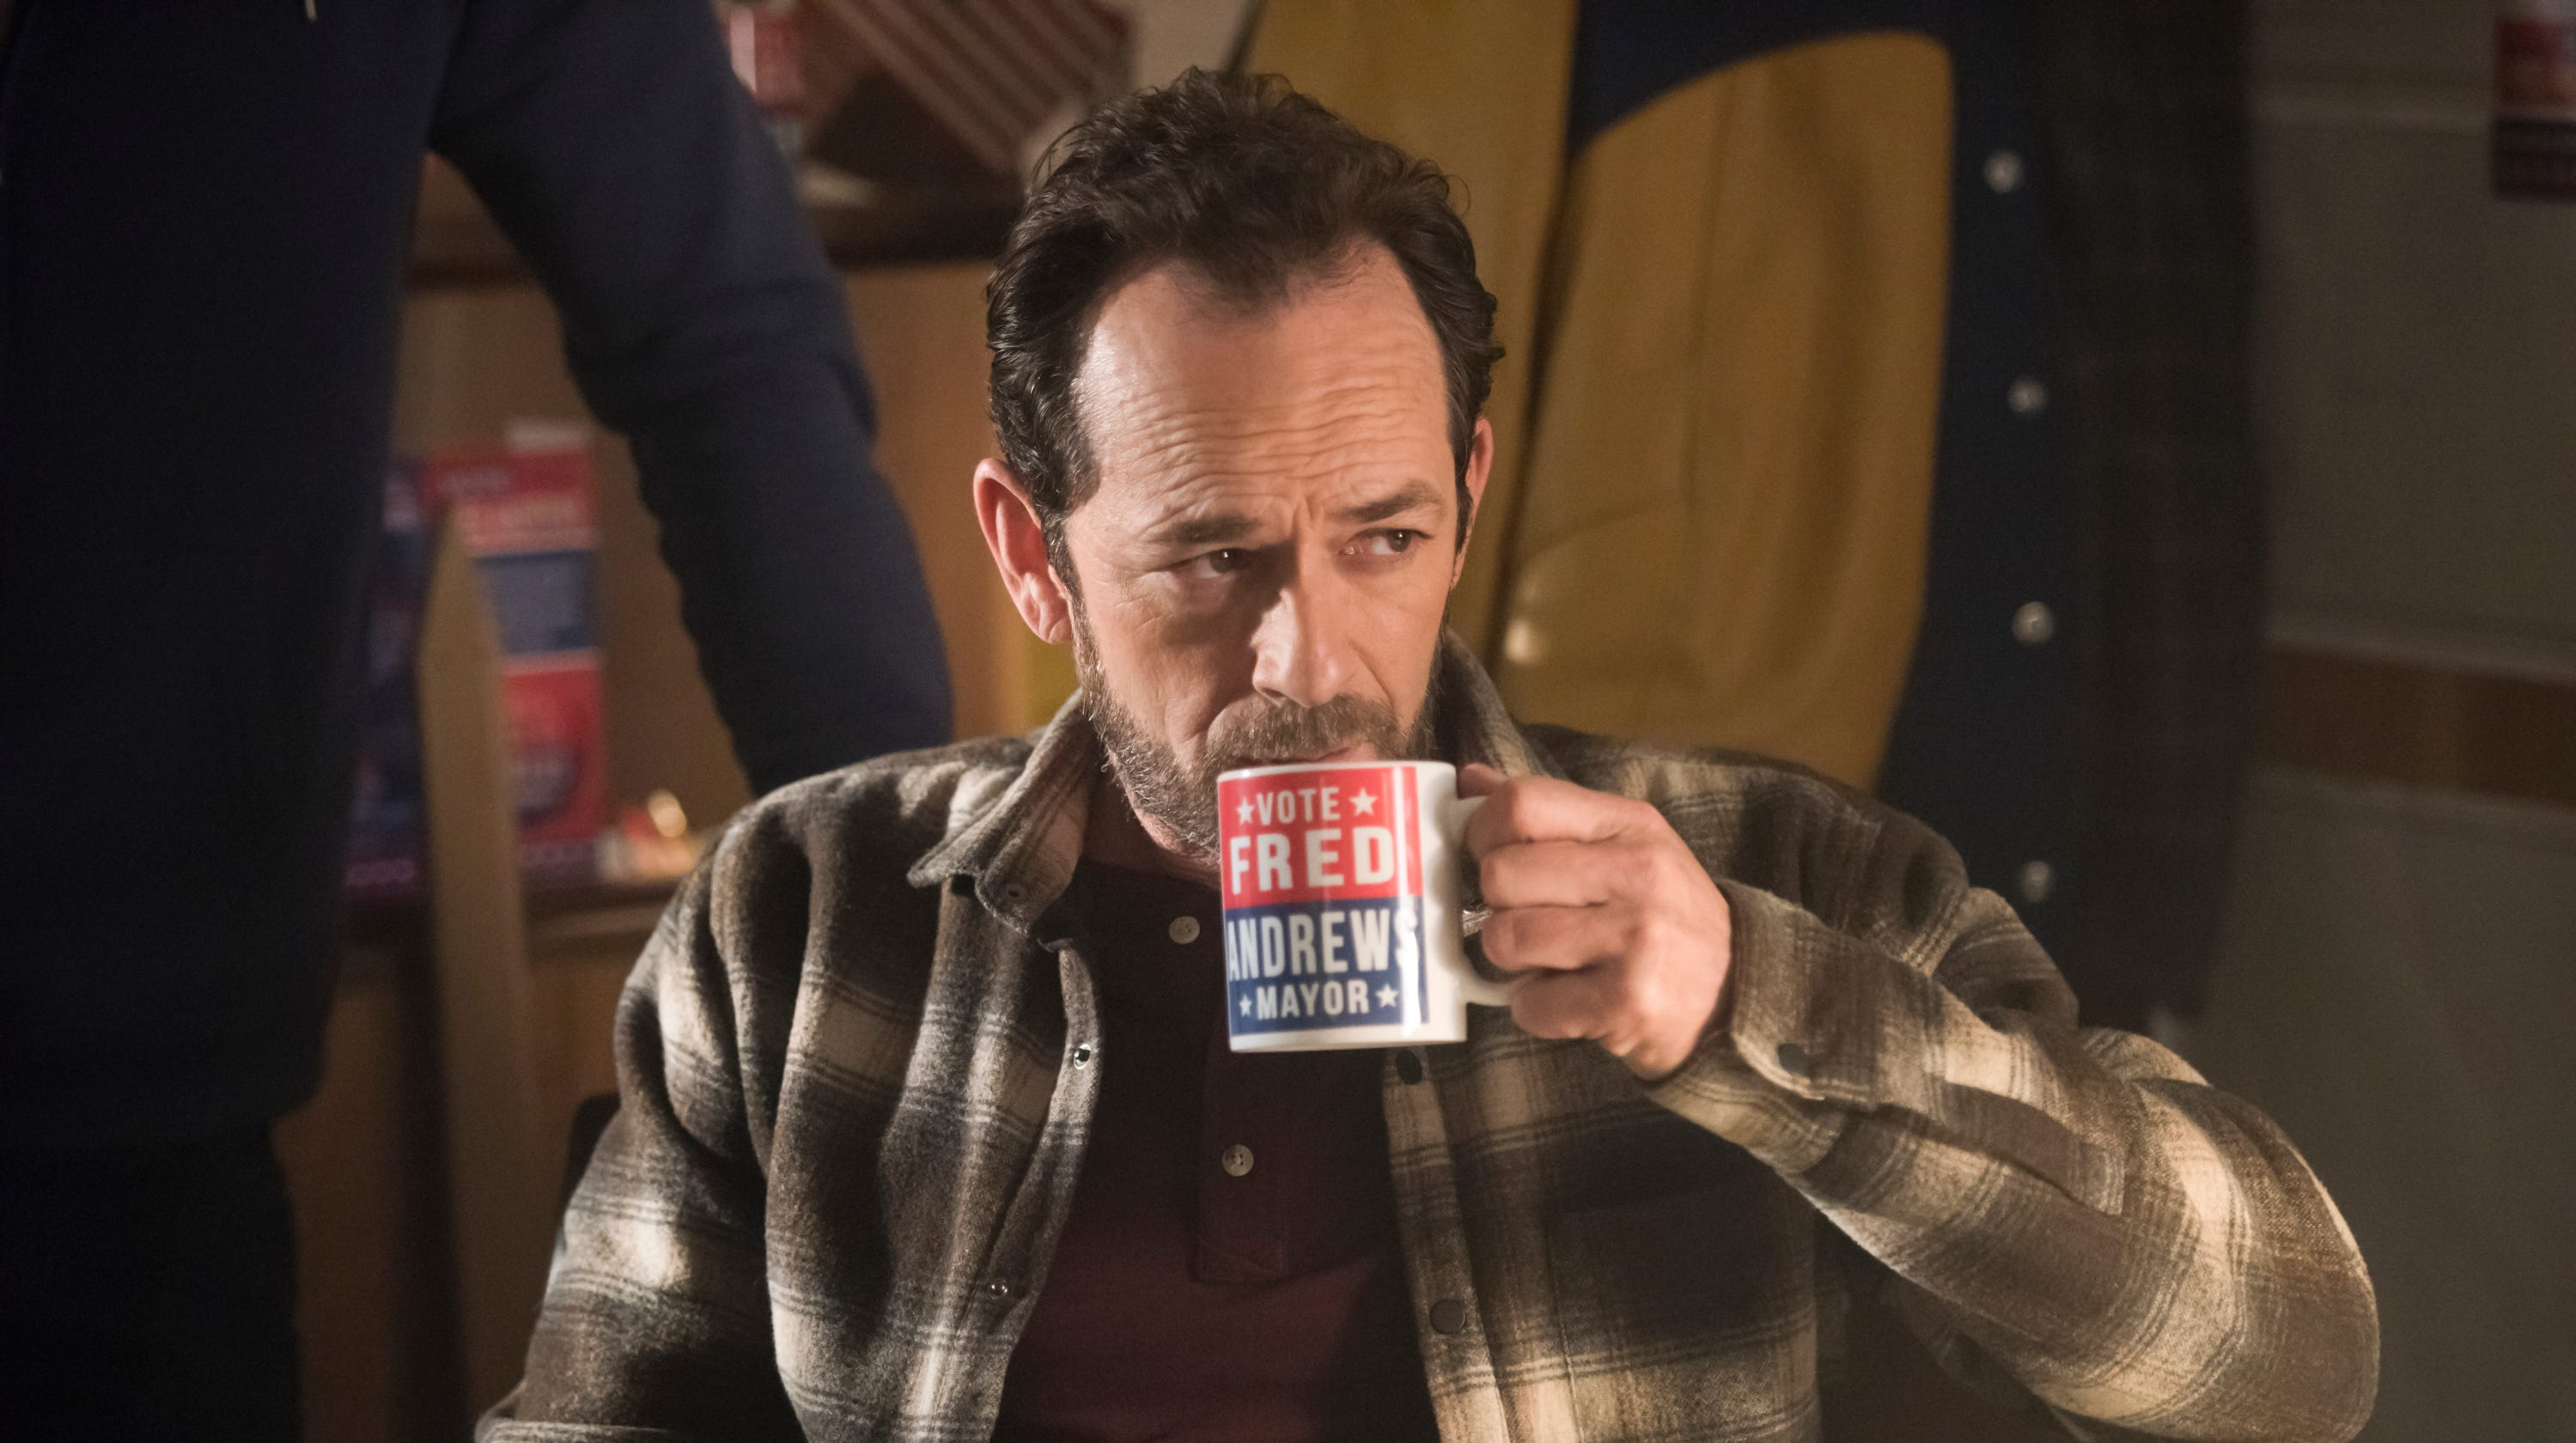 Luke Perry death means adjustment for CW's 'Riverdale'